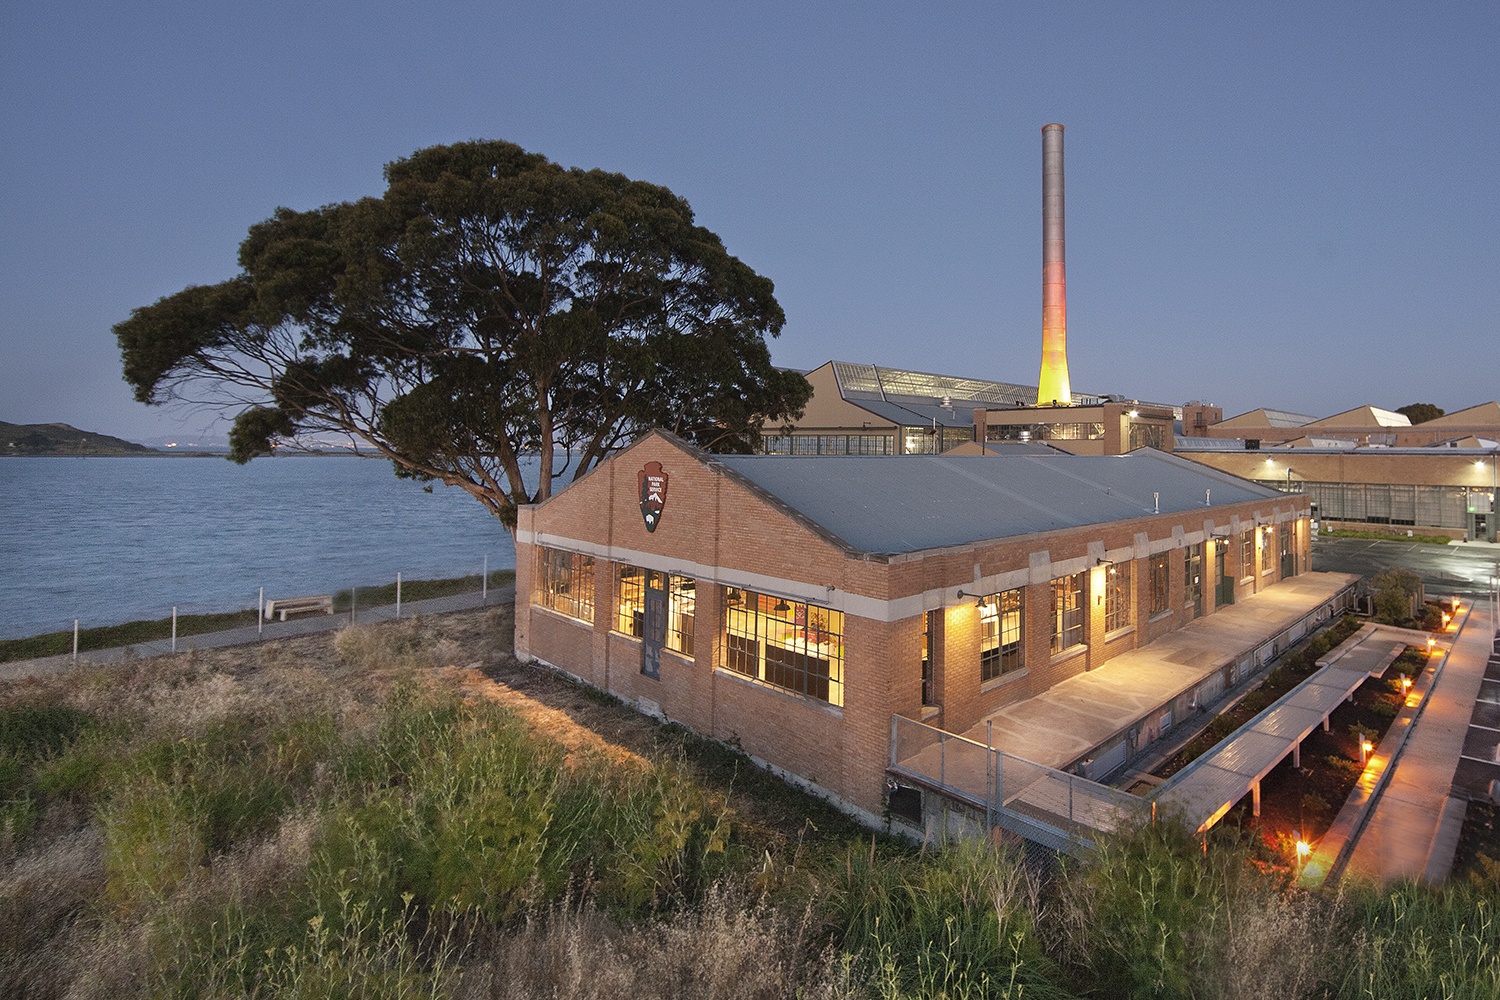 03_Projects_Rosie the Rivetor Visitor Center.jpg